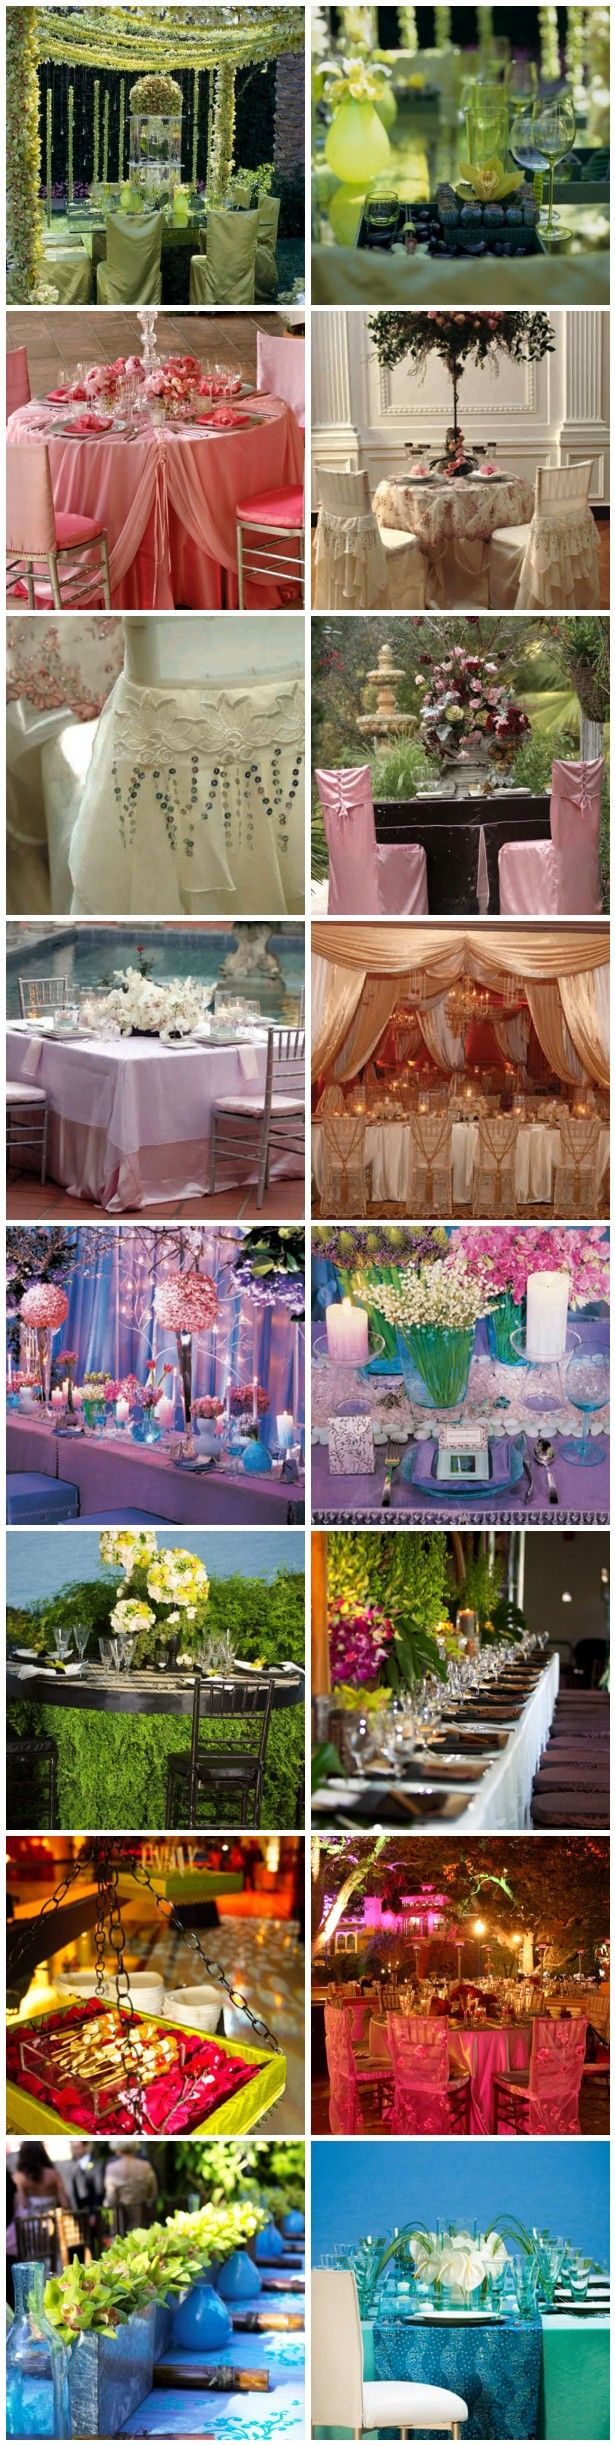 Table ideas for events..